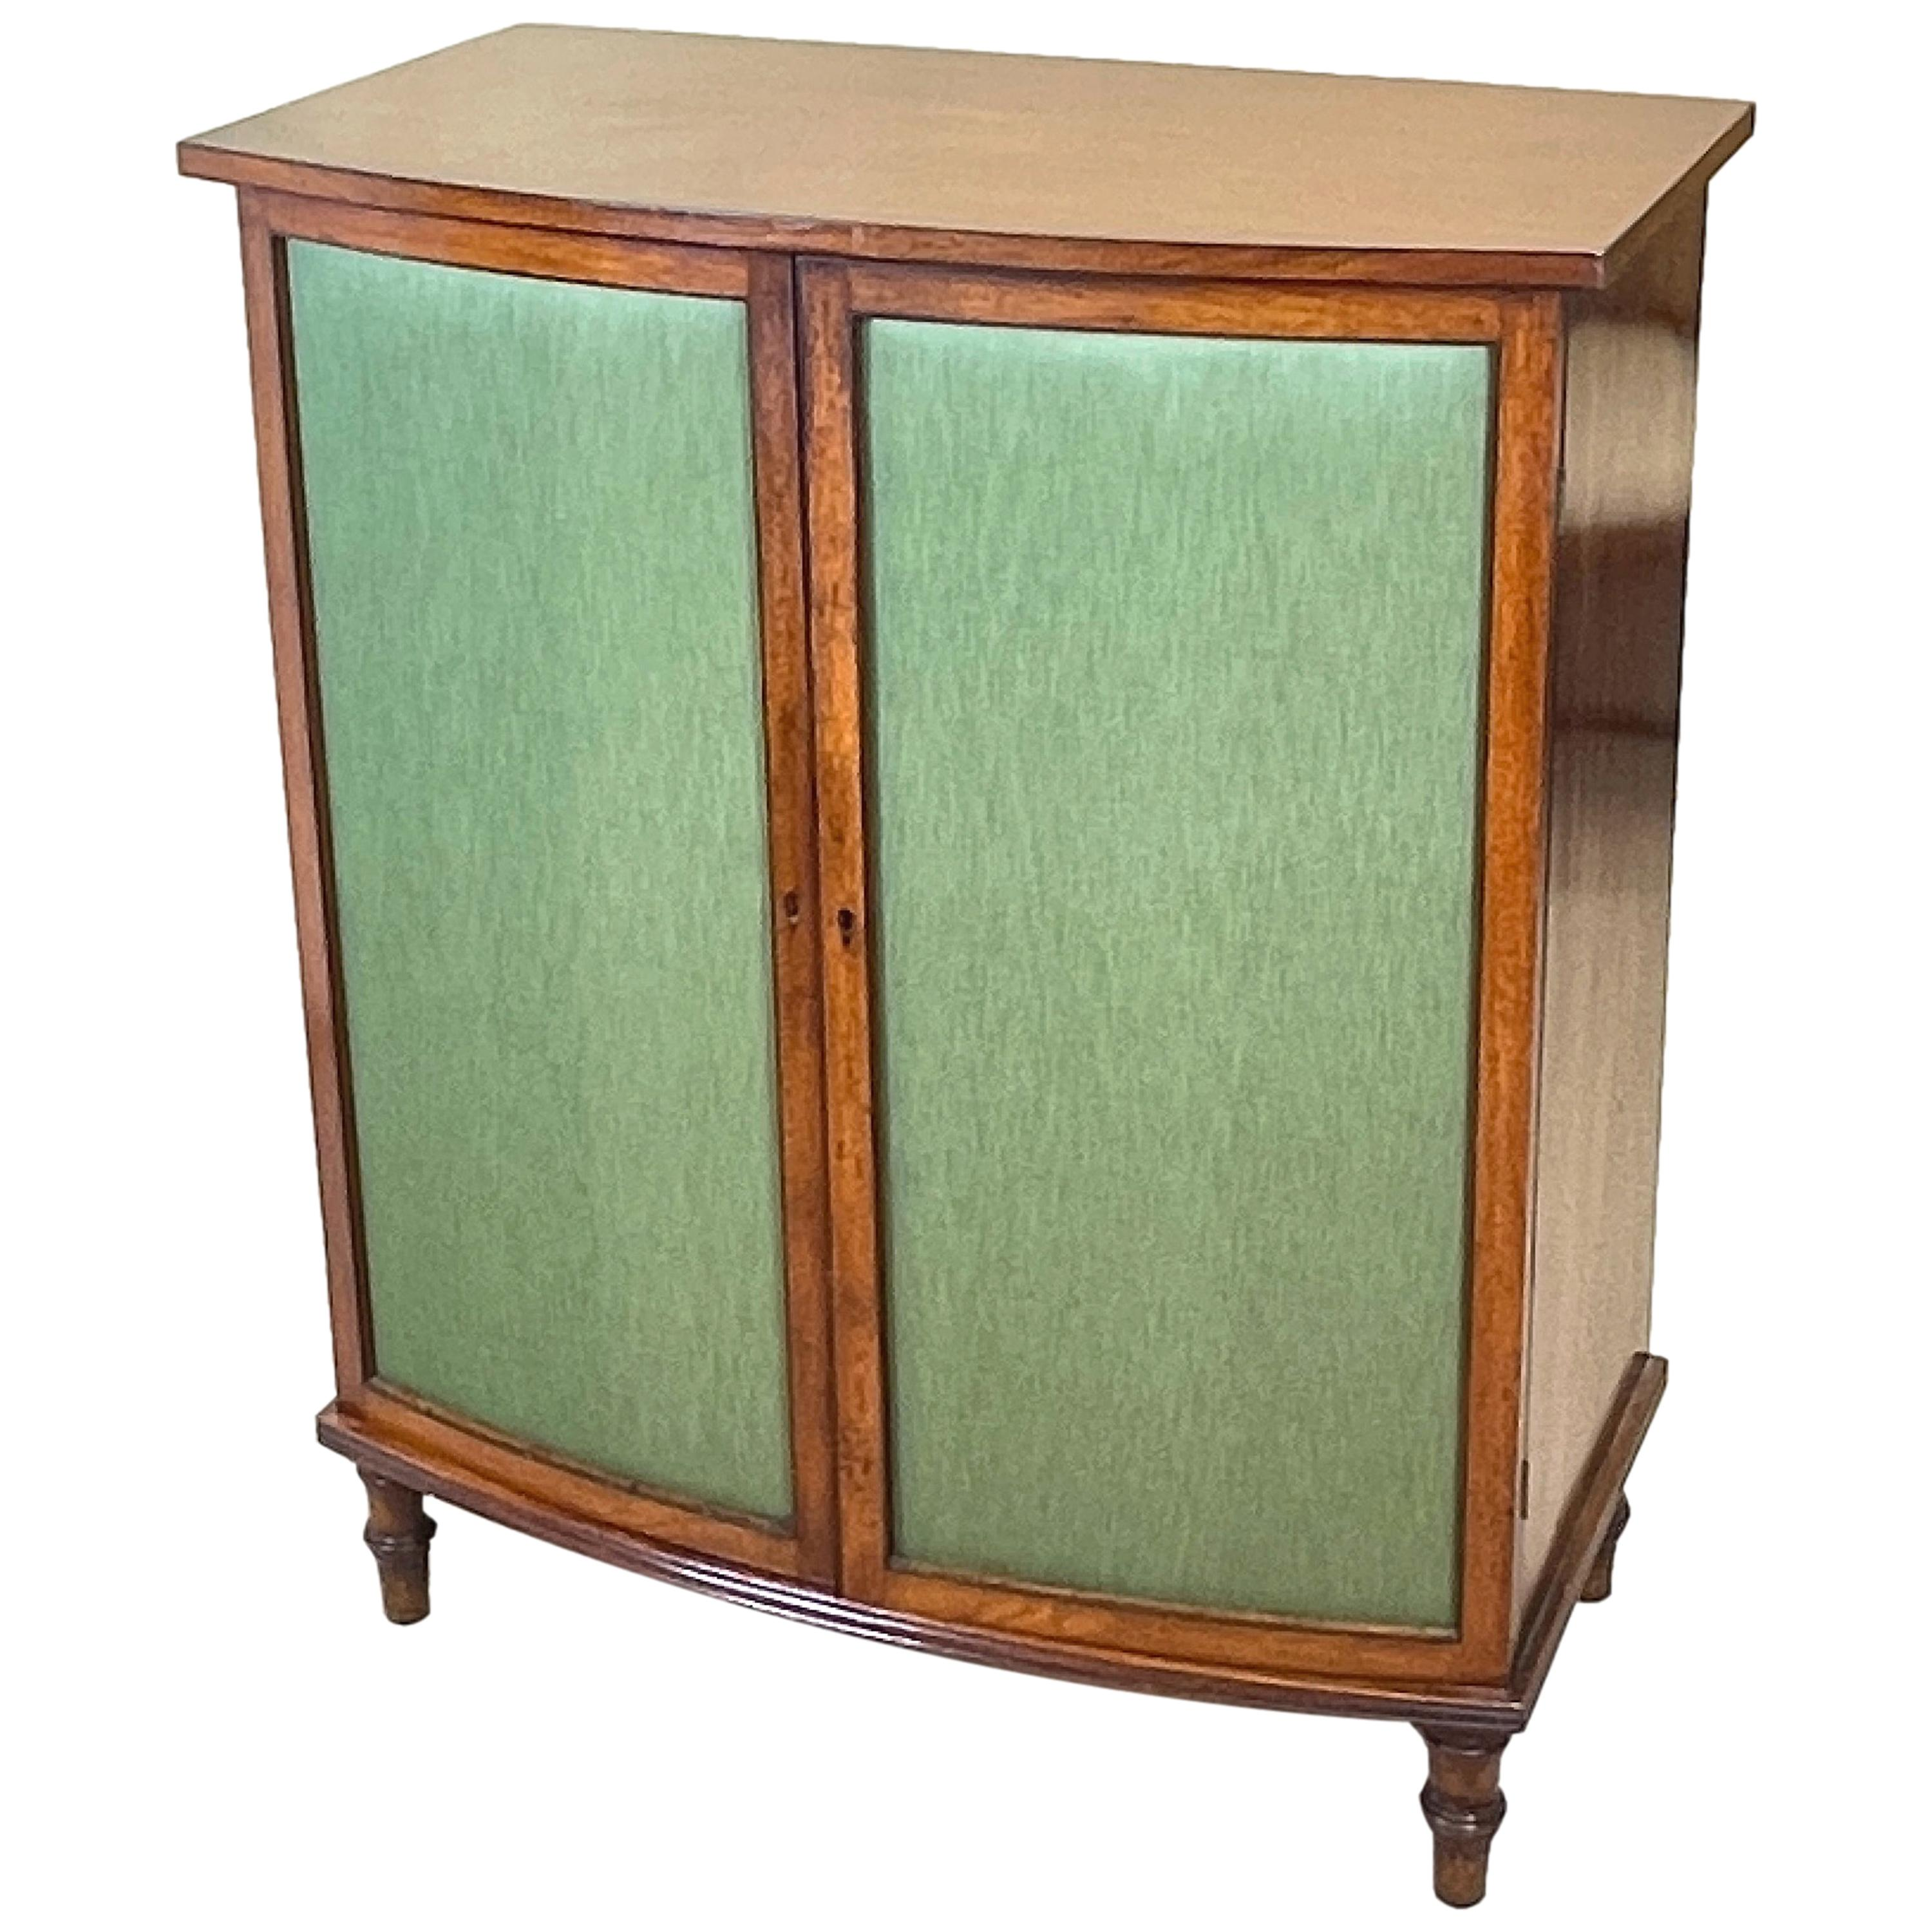 Regency Mahogany Bow Fronted Side Cabinet